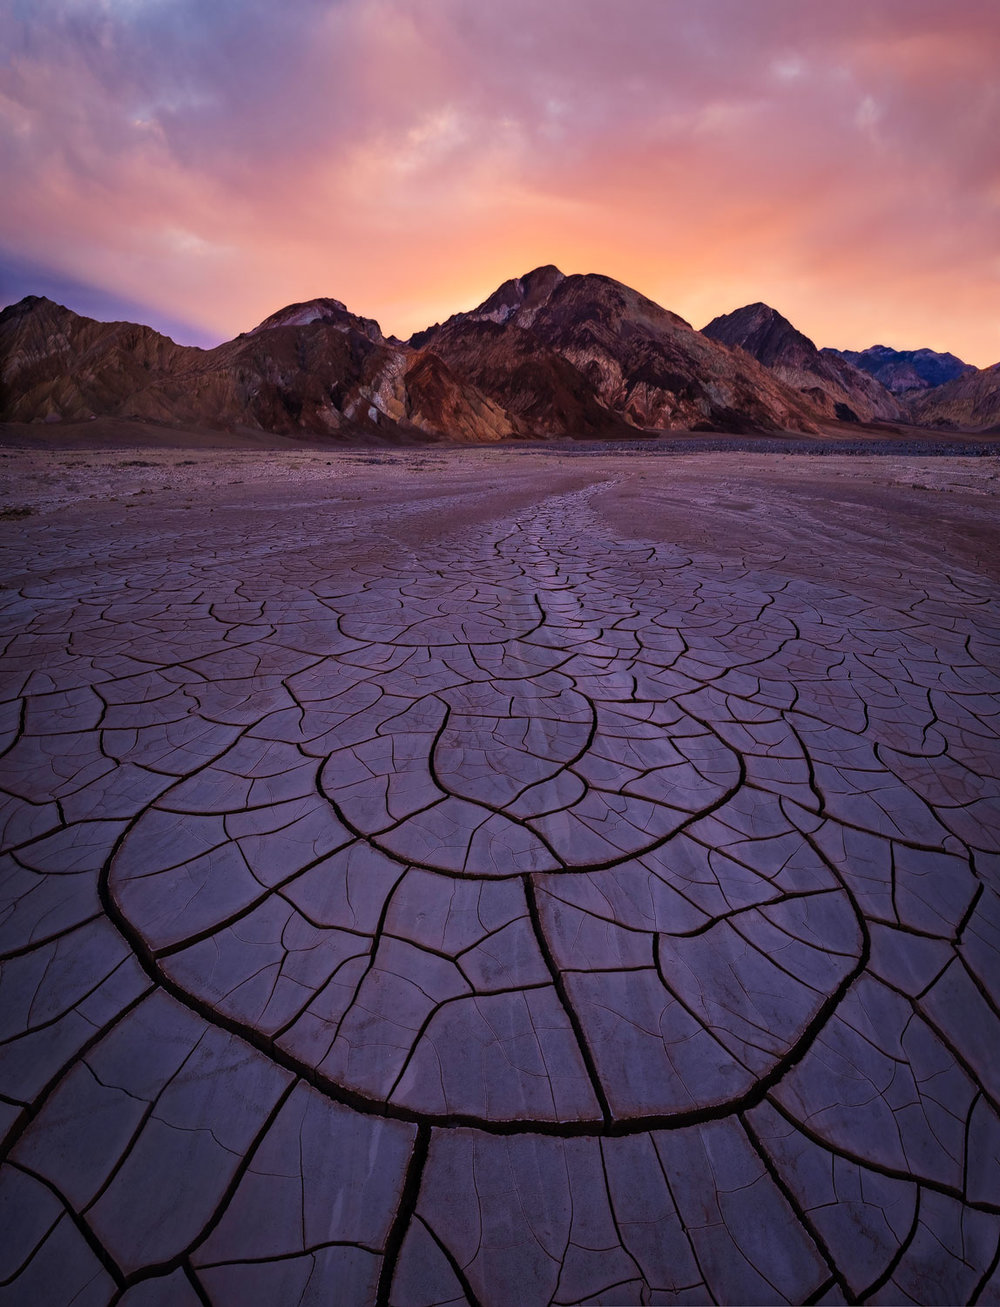 Mud cracks express the cycle of life in the desert after a flood in Death Valley National Park